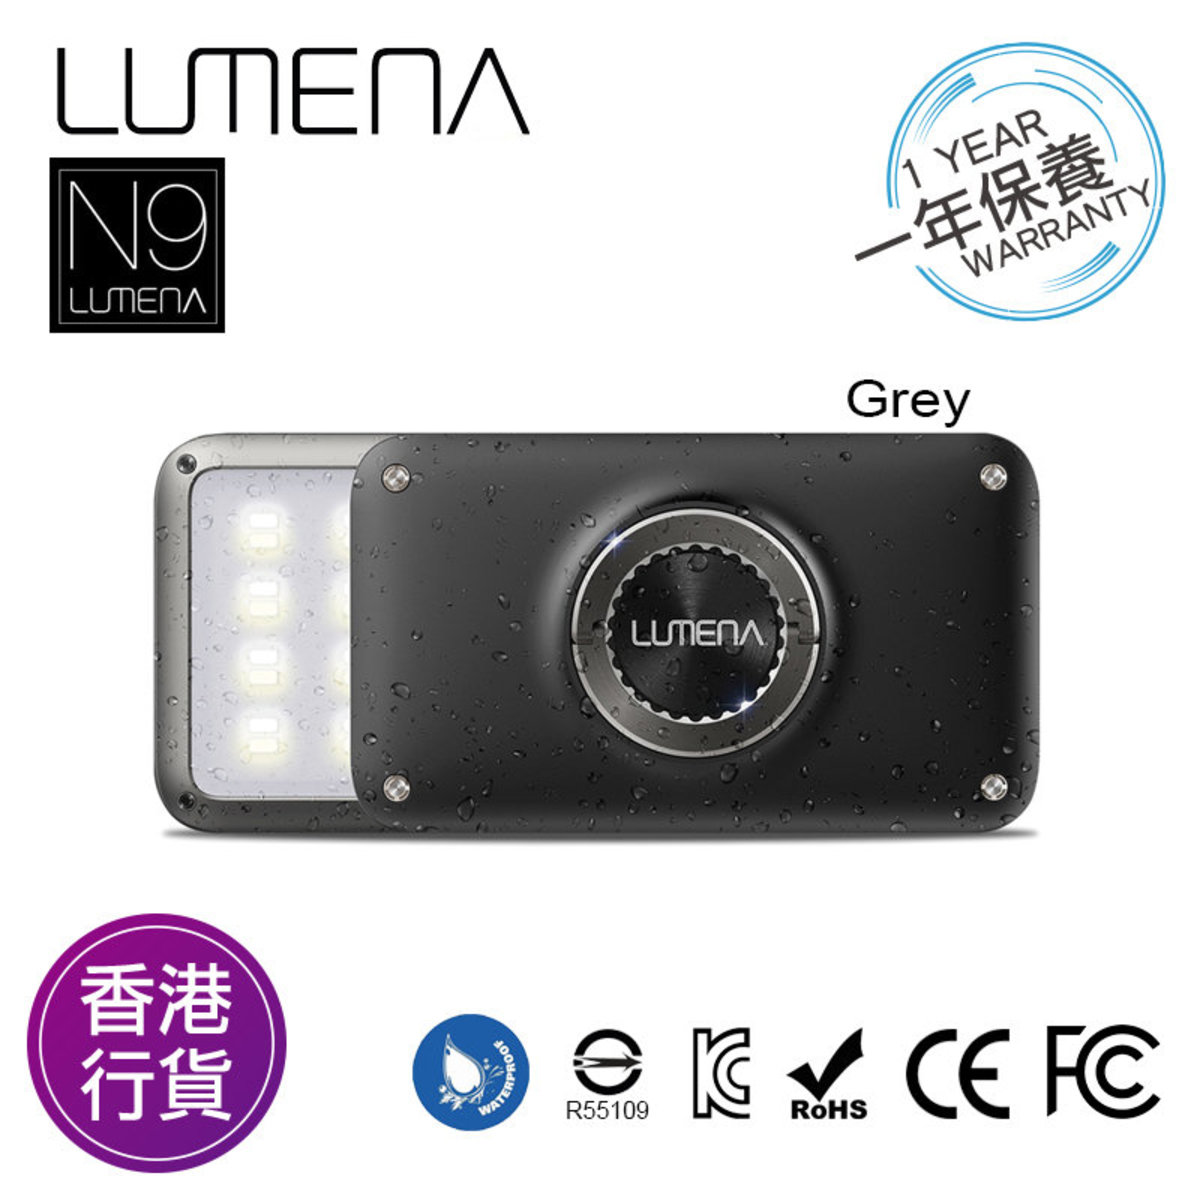 N9 LUMENA2 power lighting LED lights Grey One Year Warranty